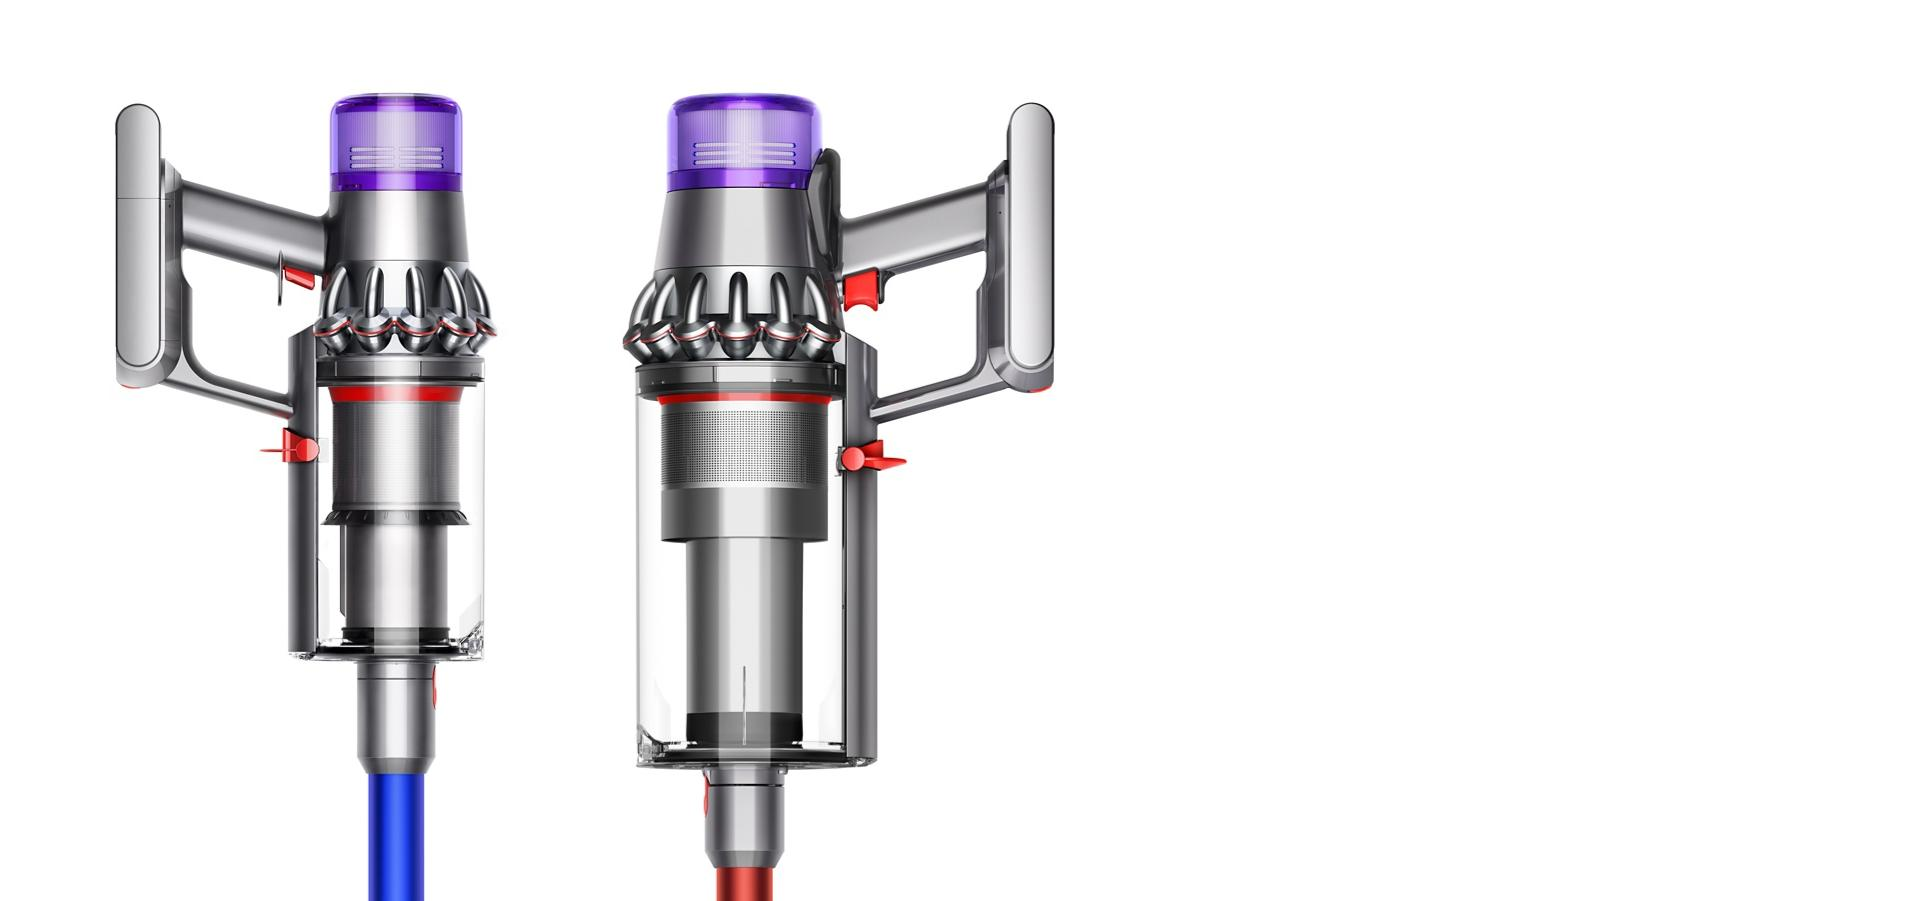 Image of Dyson V11 Absolute Extra next to Dyson V11 Outsize showing differences in bin size